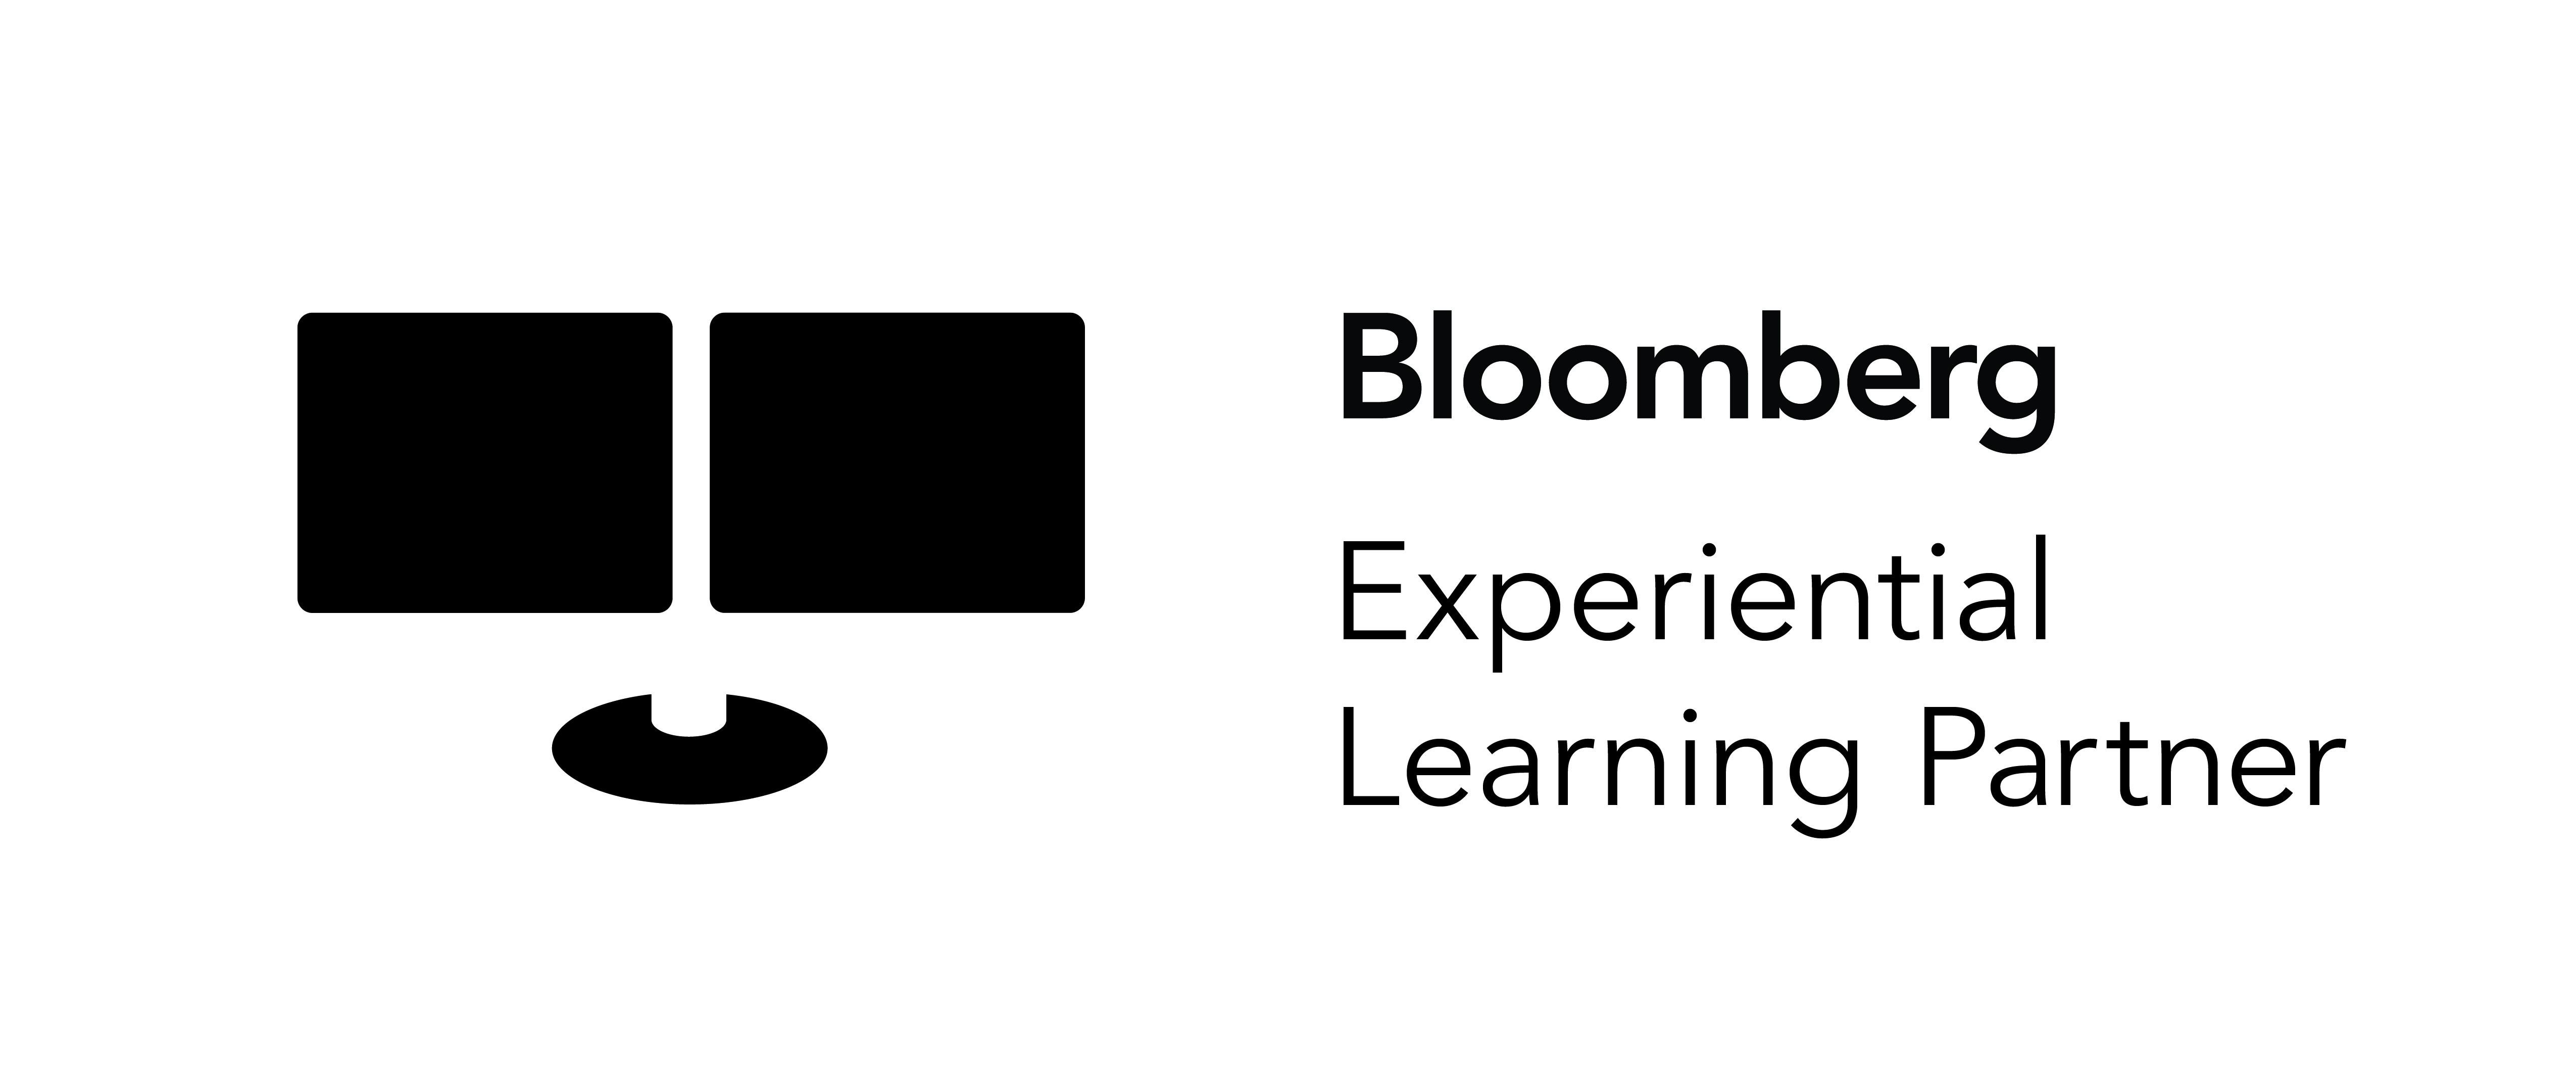 Bloomberg Experiential Learning Partnet logo